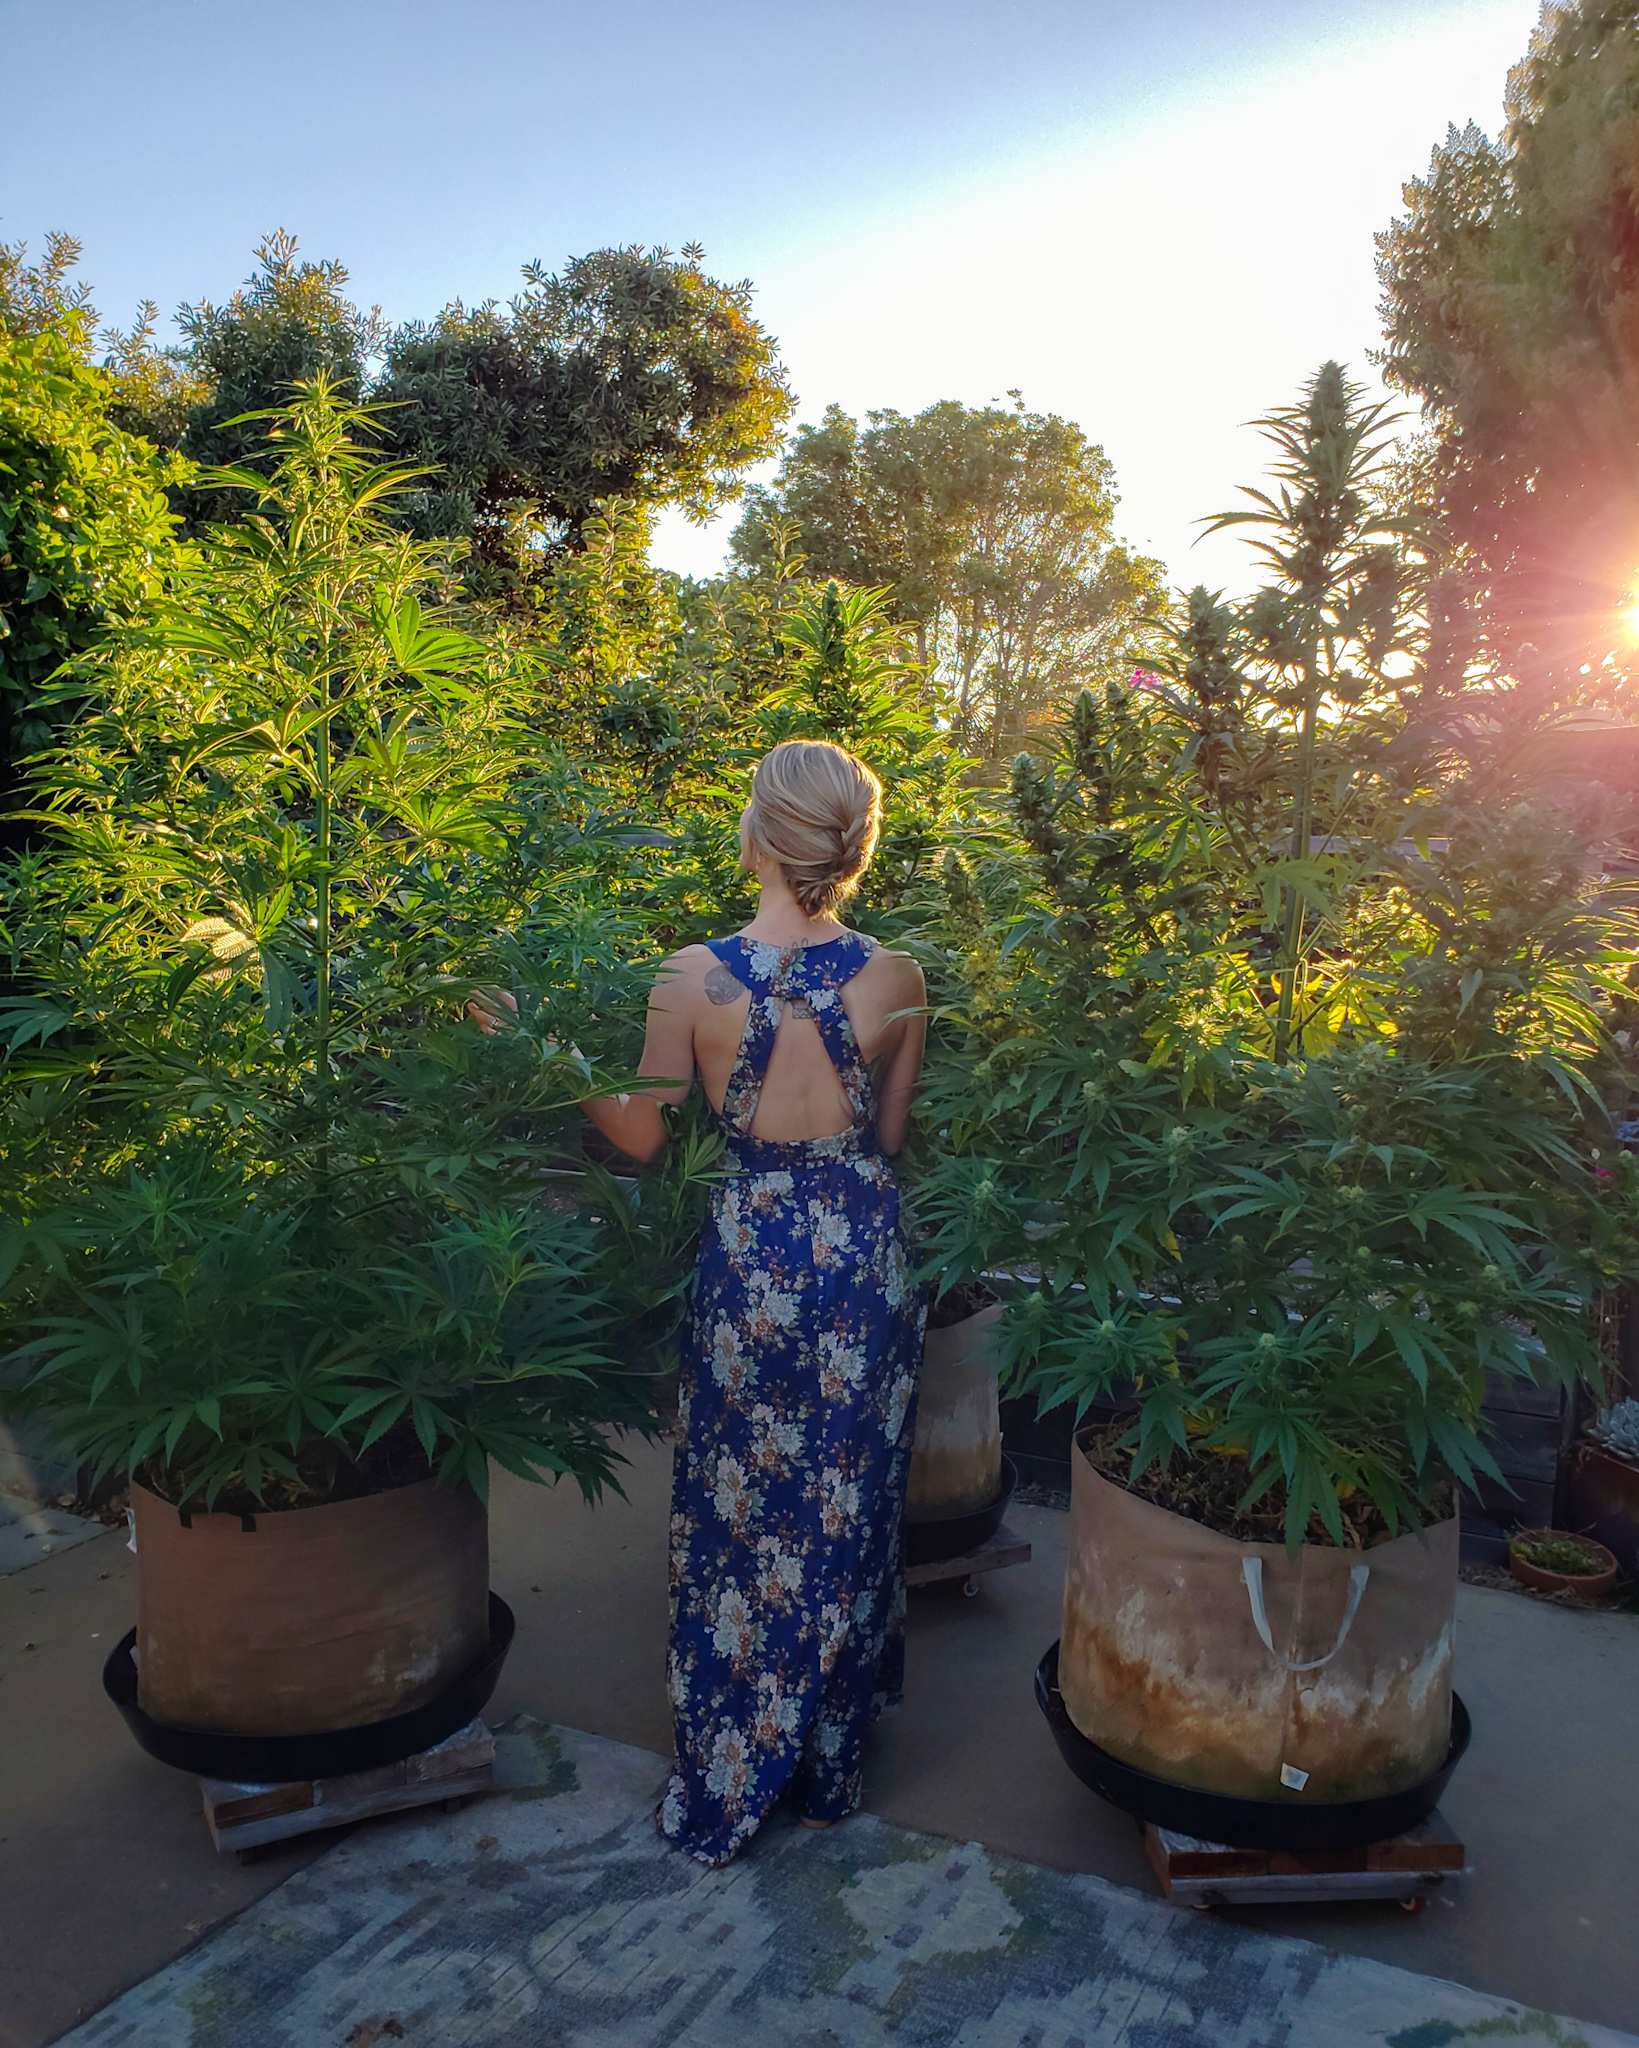 A woman wearing a blue dress with floral print is standing amongst three cannabis plants that are growing in 25 gallon fabric grow bags. They are all much taller than she is and the sun is shining in through the plants, illuminating the area in a warm glow.